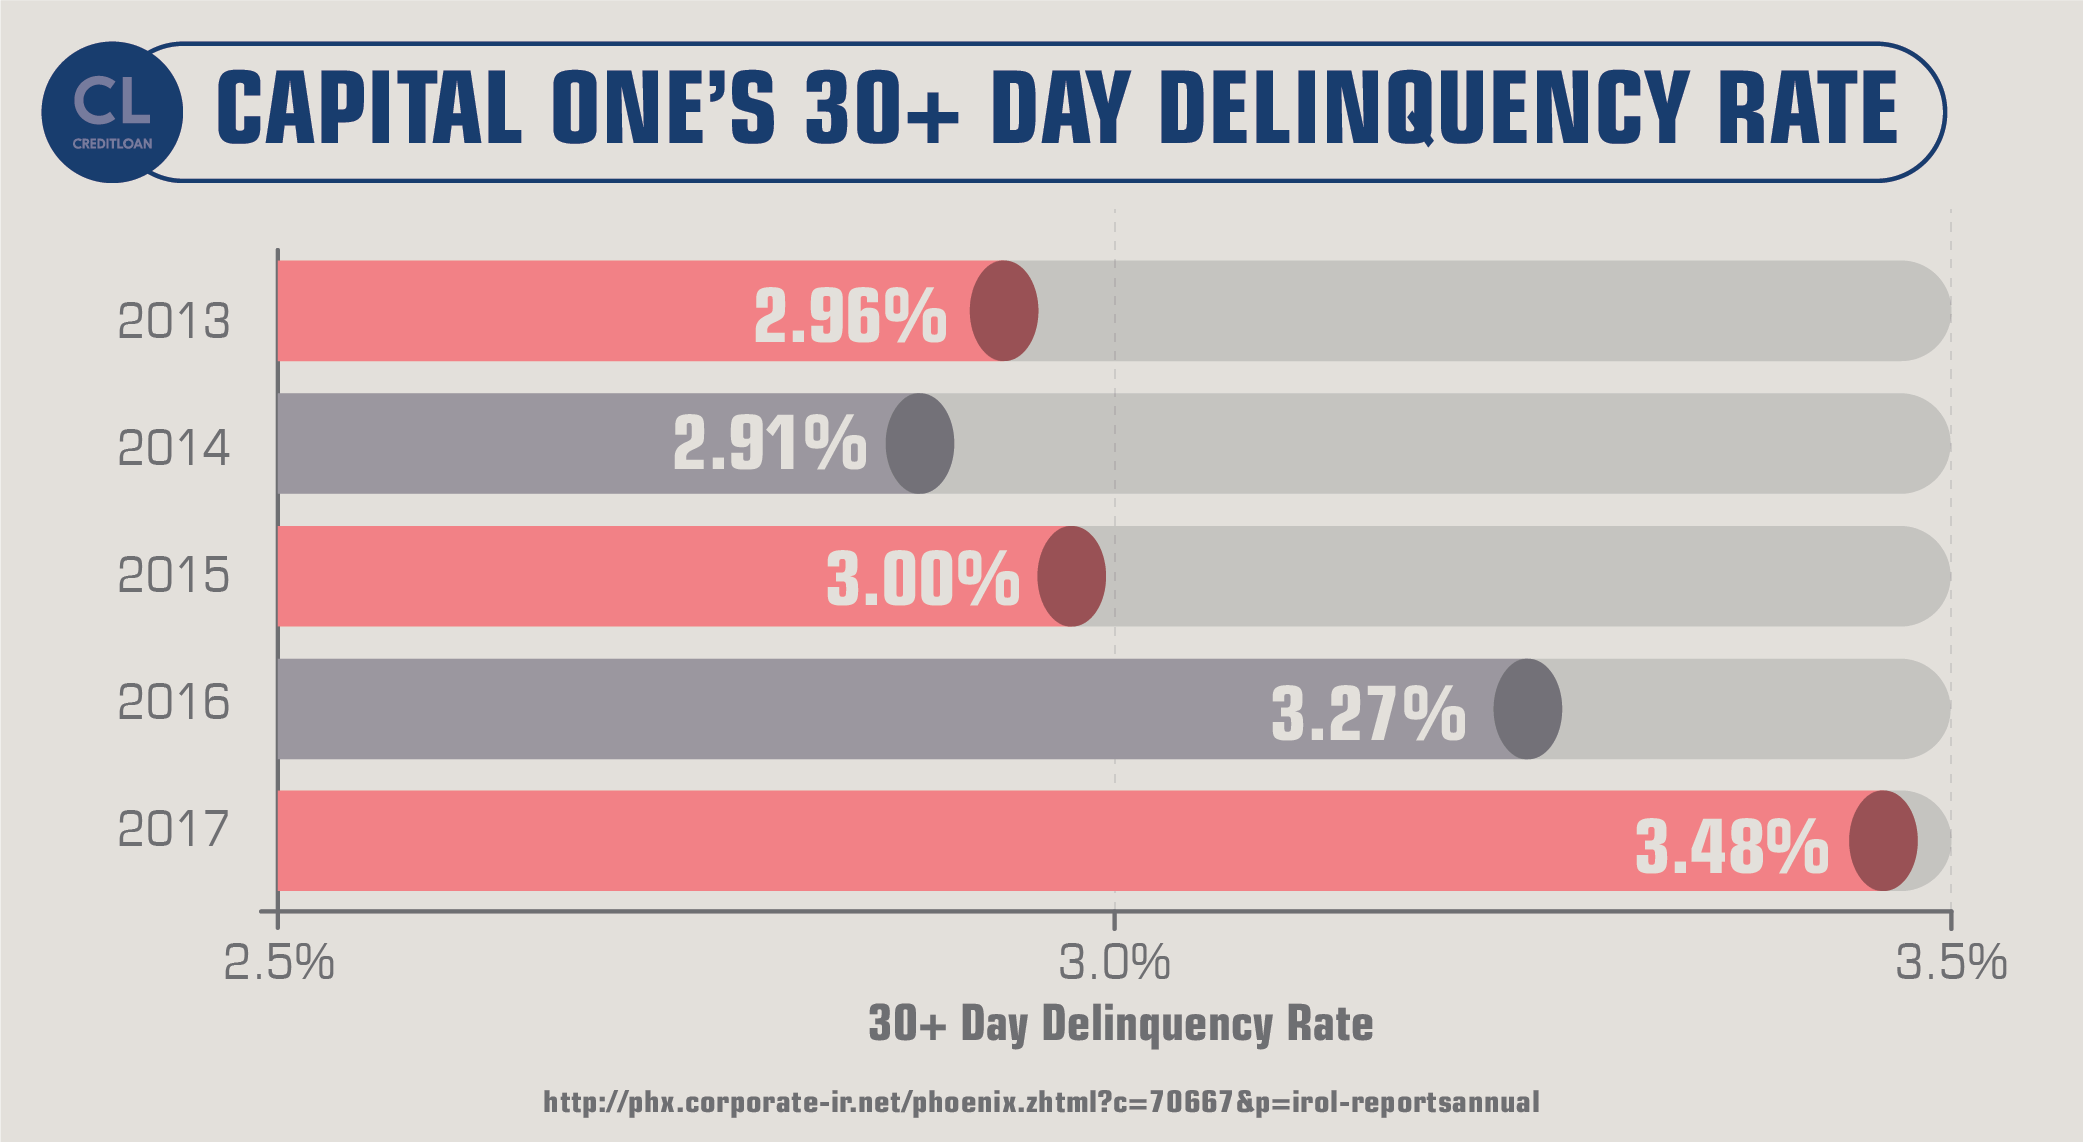 Capital One's 30+ Day Delinquency Rate from 2013-2017